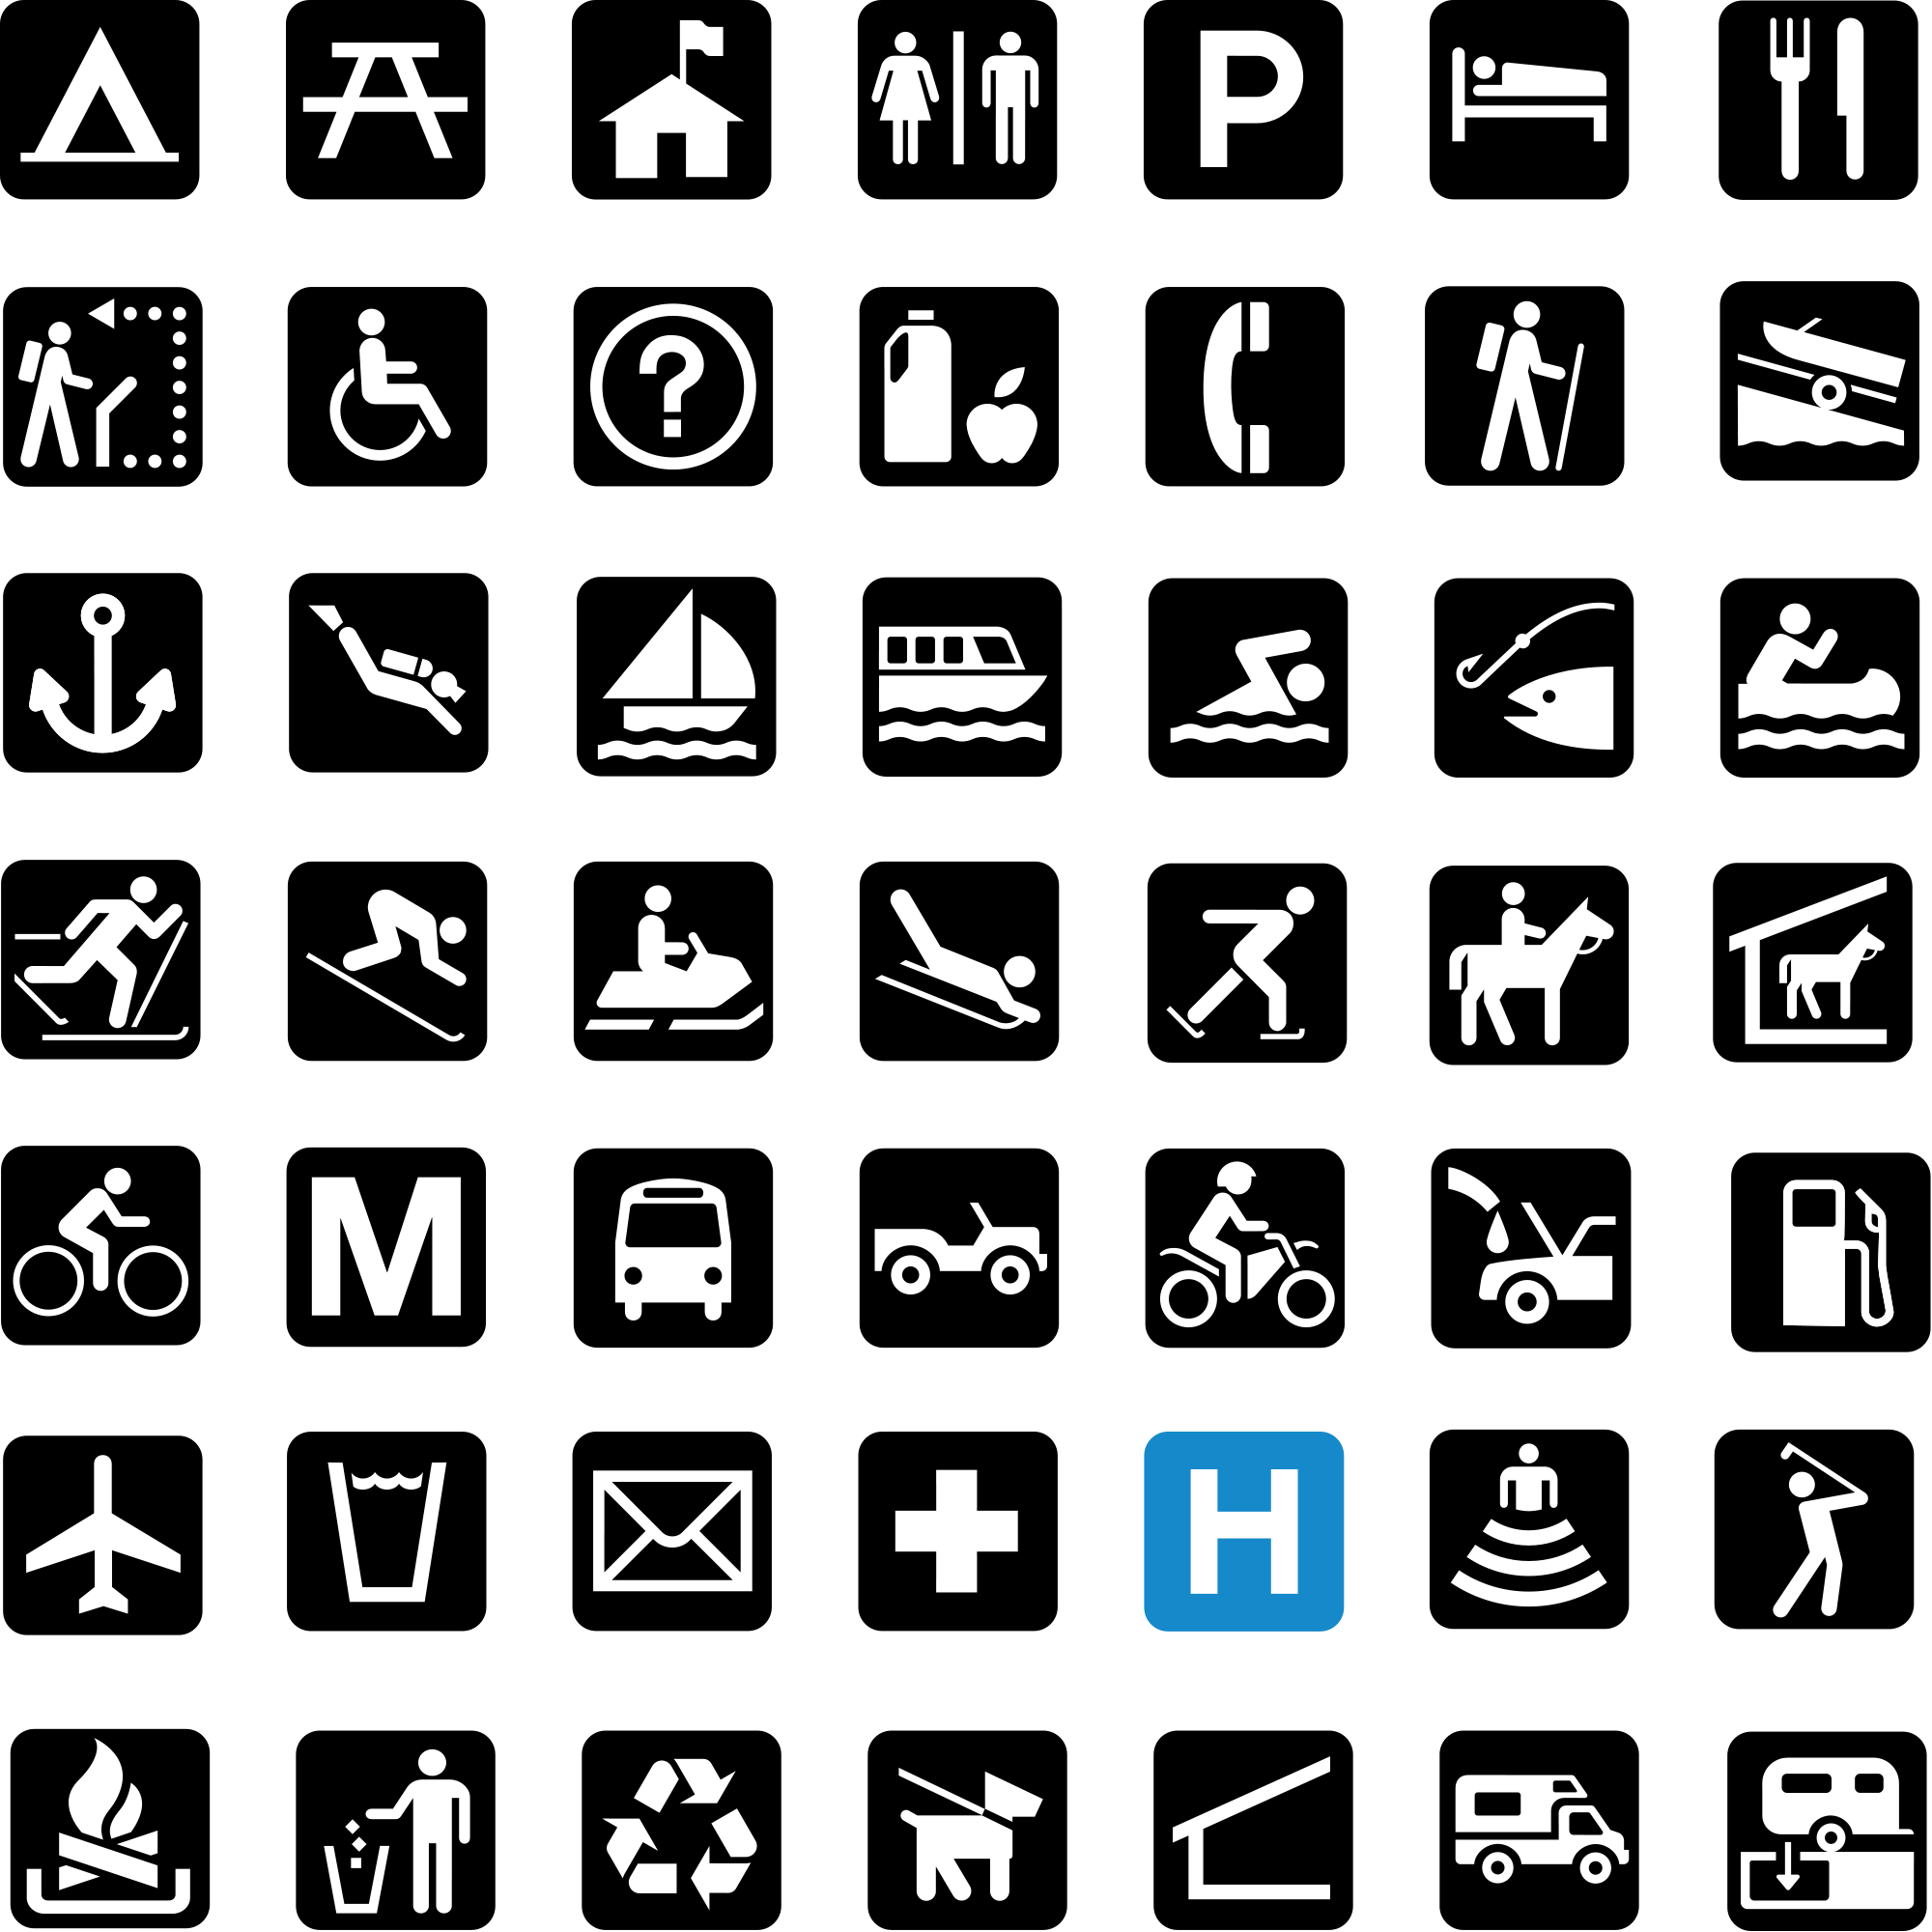 A pictogram or pictograph conveys meaning through pictorial standard cartographic symbols and patterns used on national park service maps available as a truetype font buycottarizona Image collections